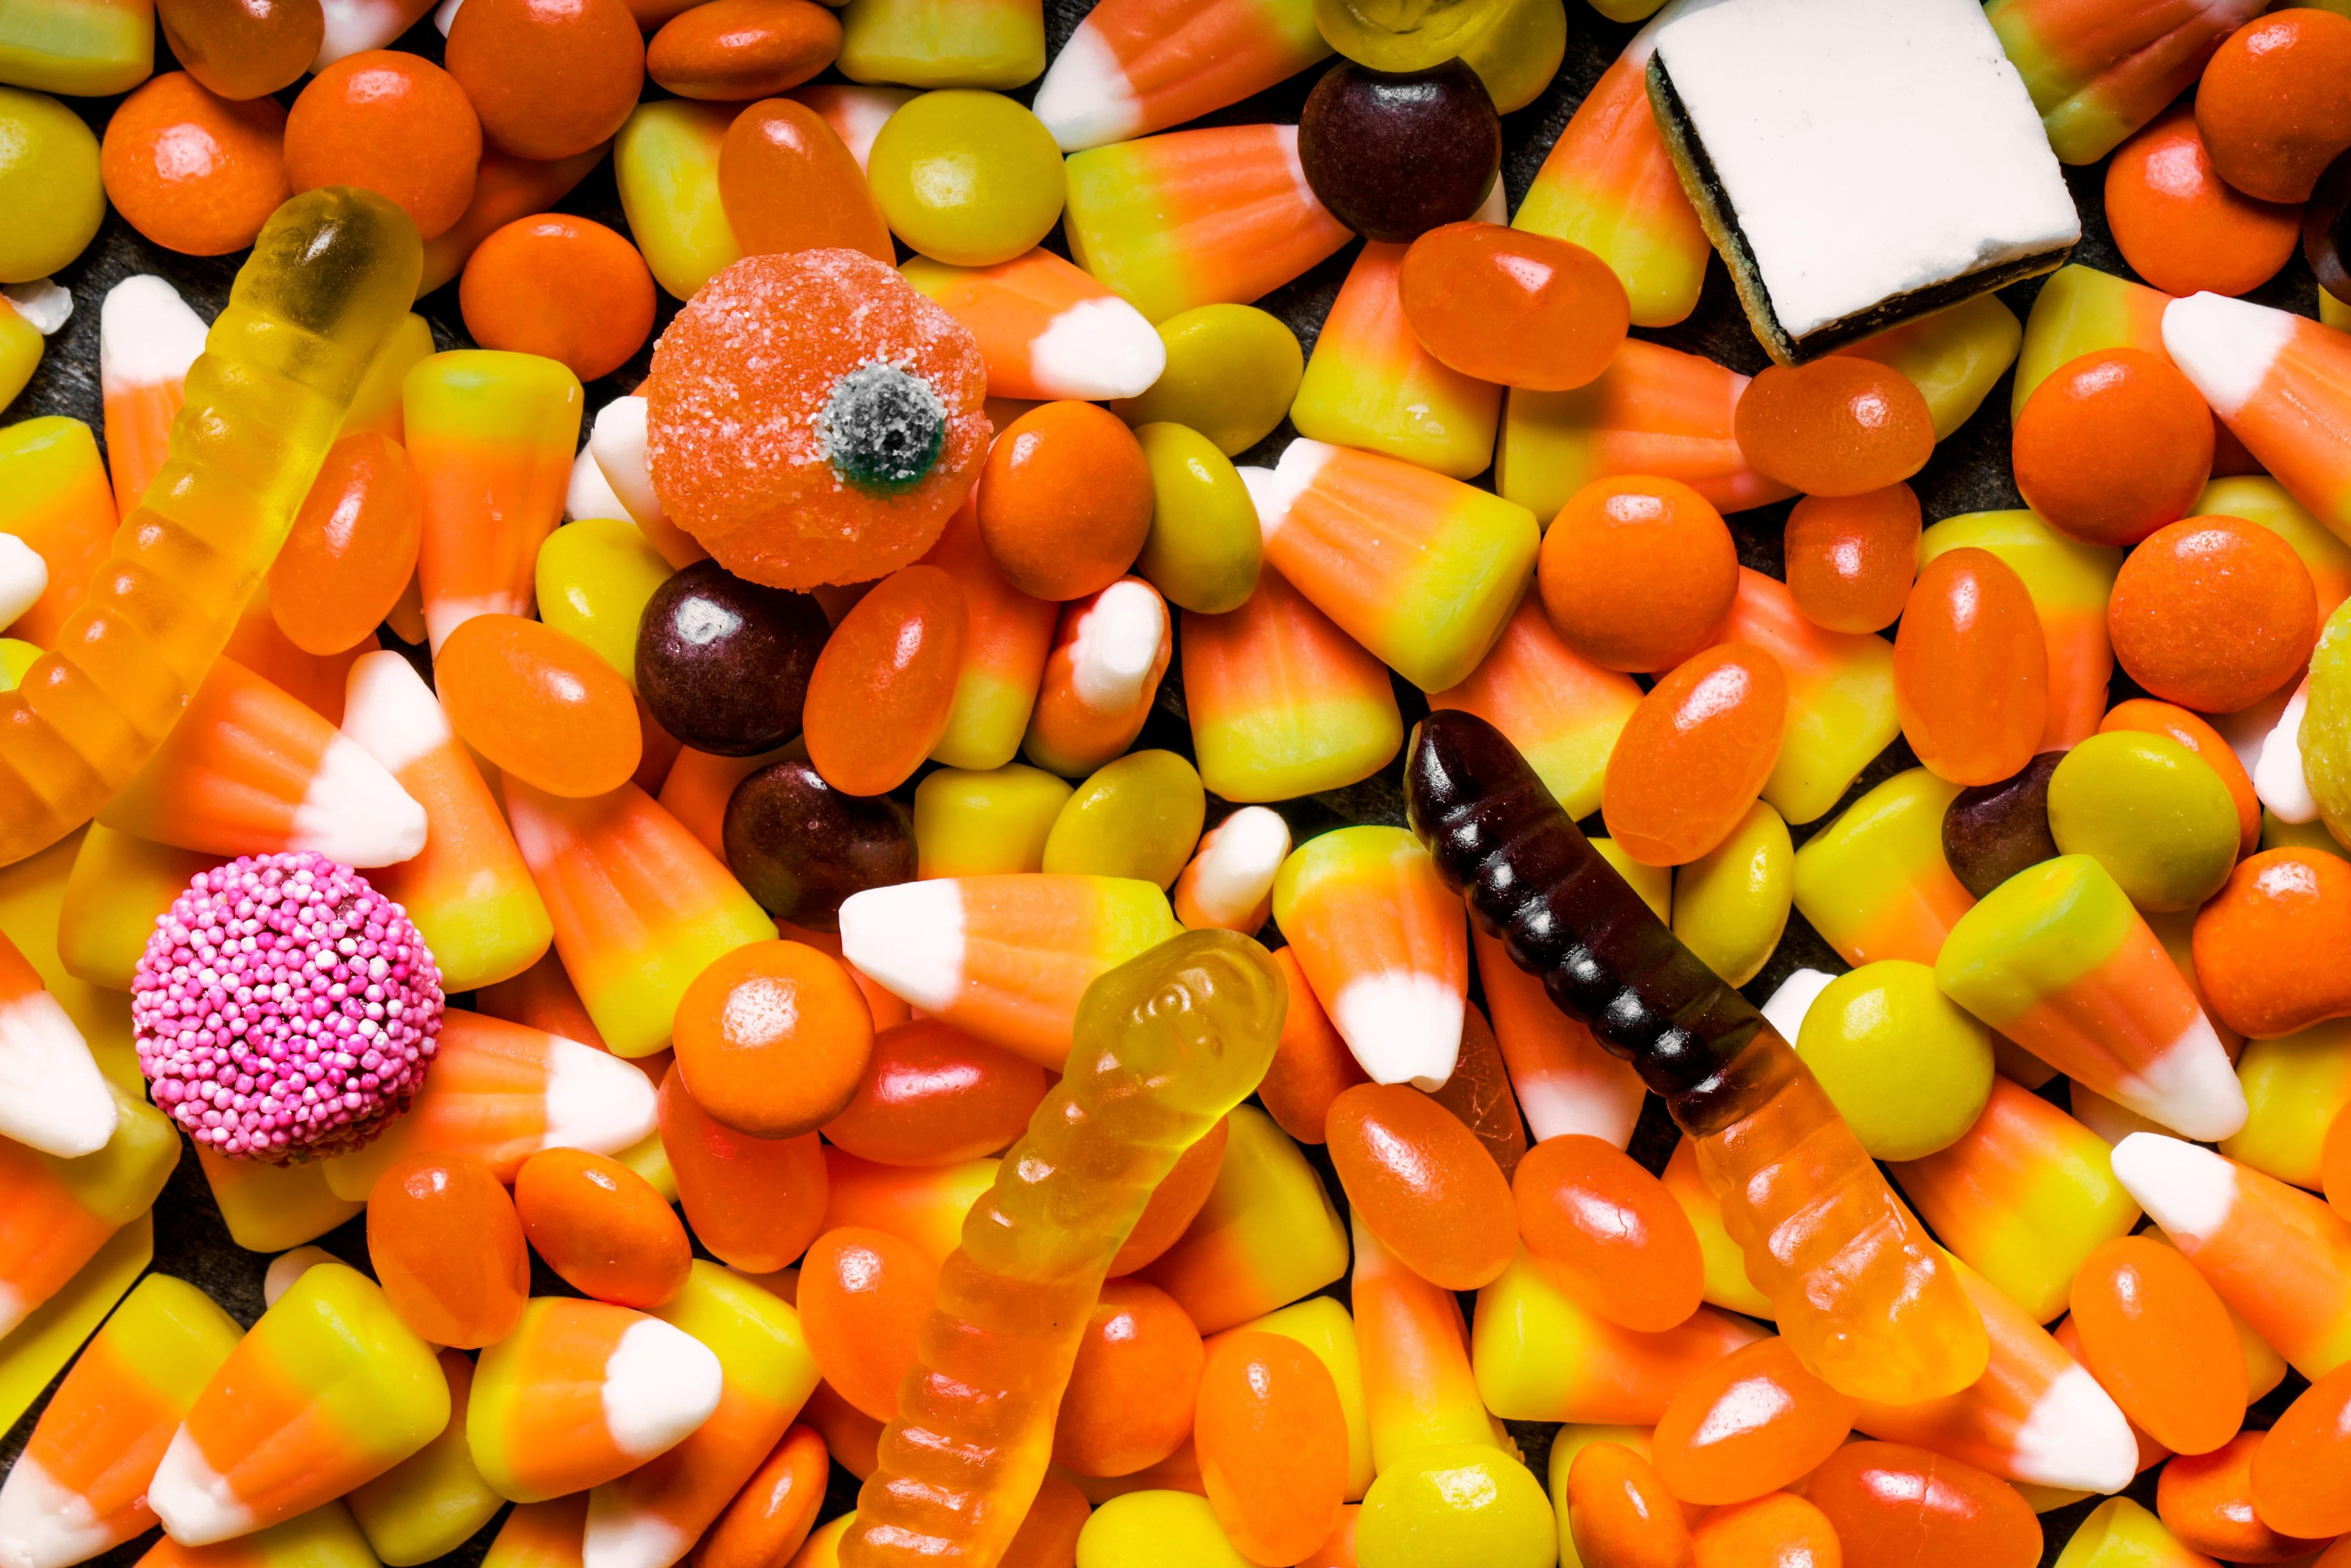 Halloween candy is ALREADY showing up in stores this year